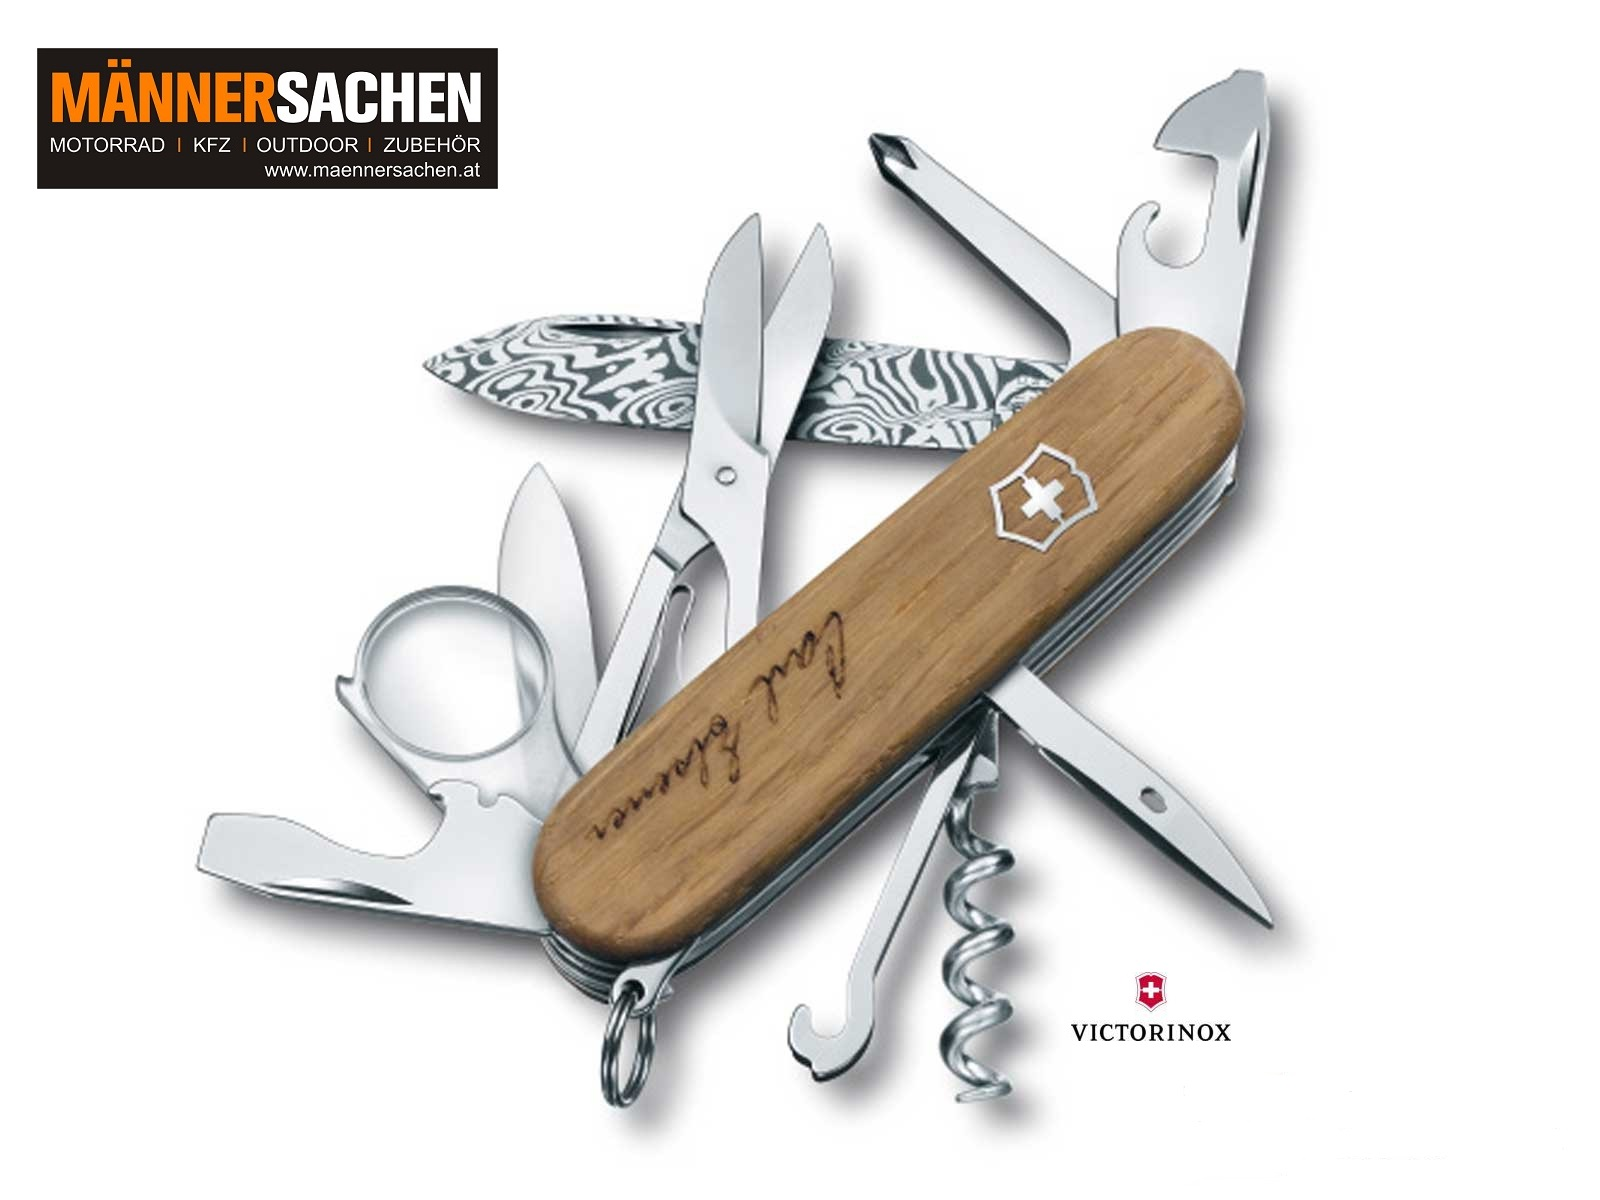 Victorinox DAMAST CARL ELSENER LIMITED EDITION 2013 LAGERND